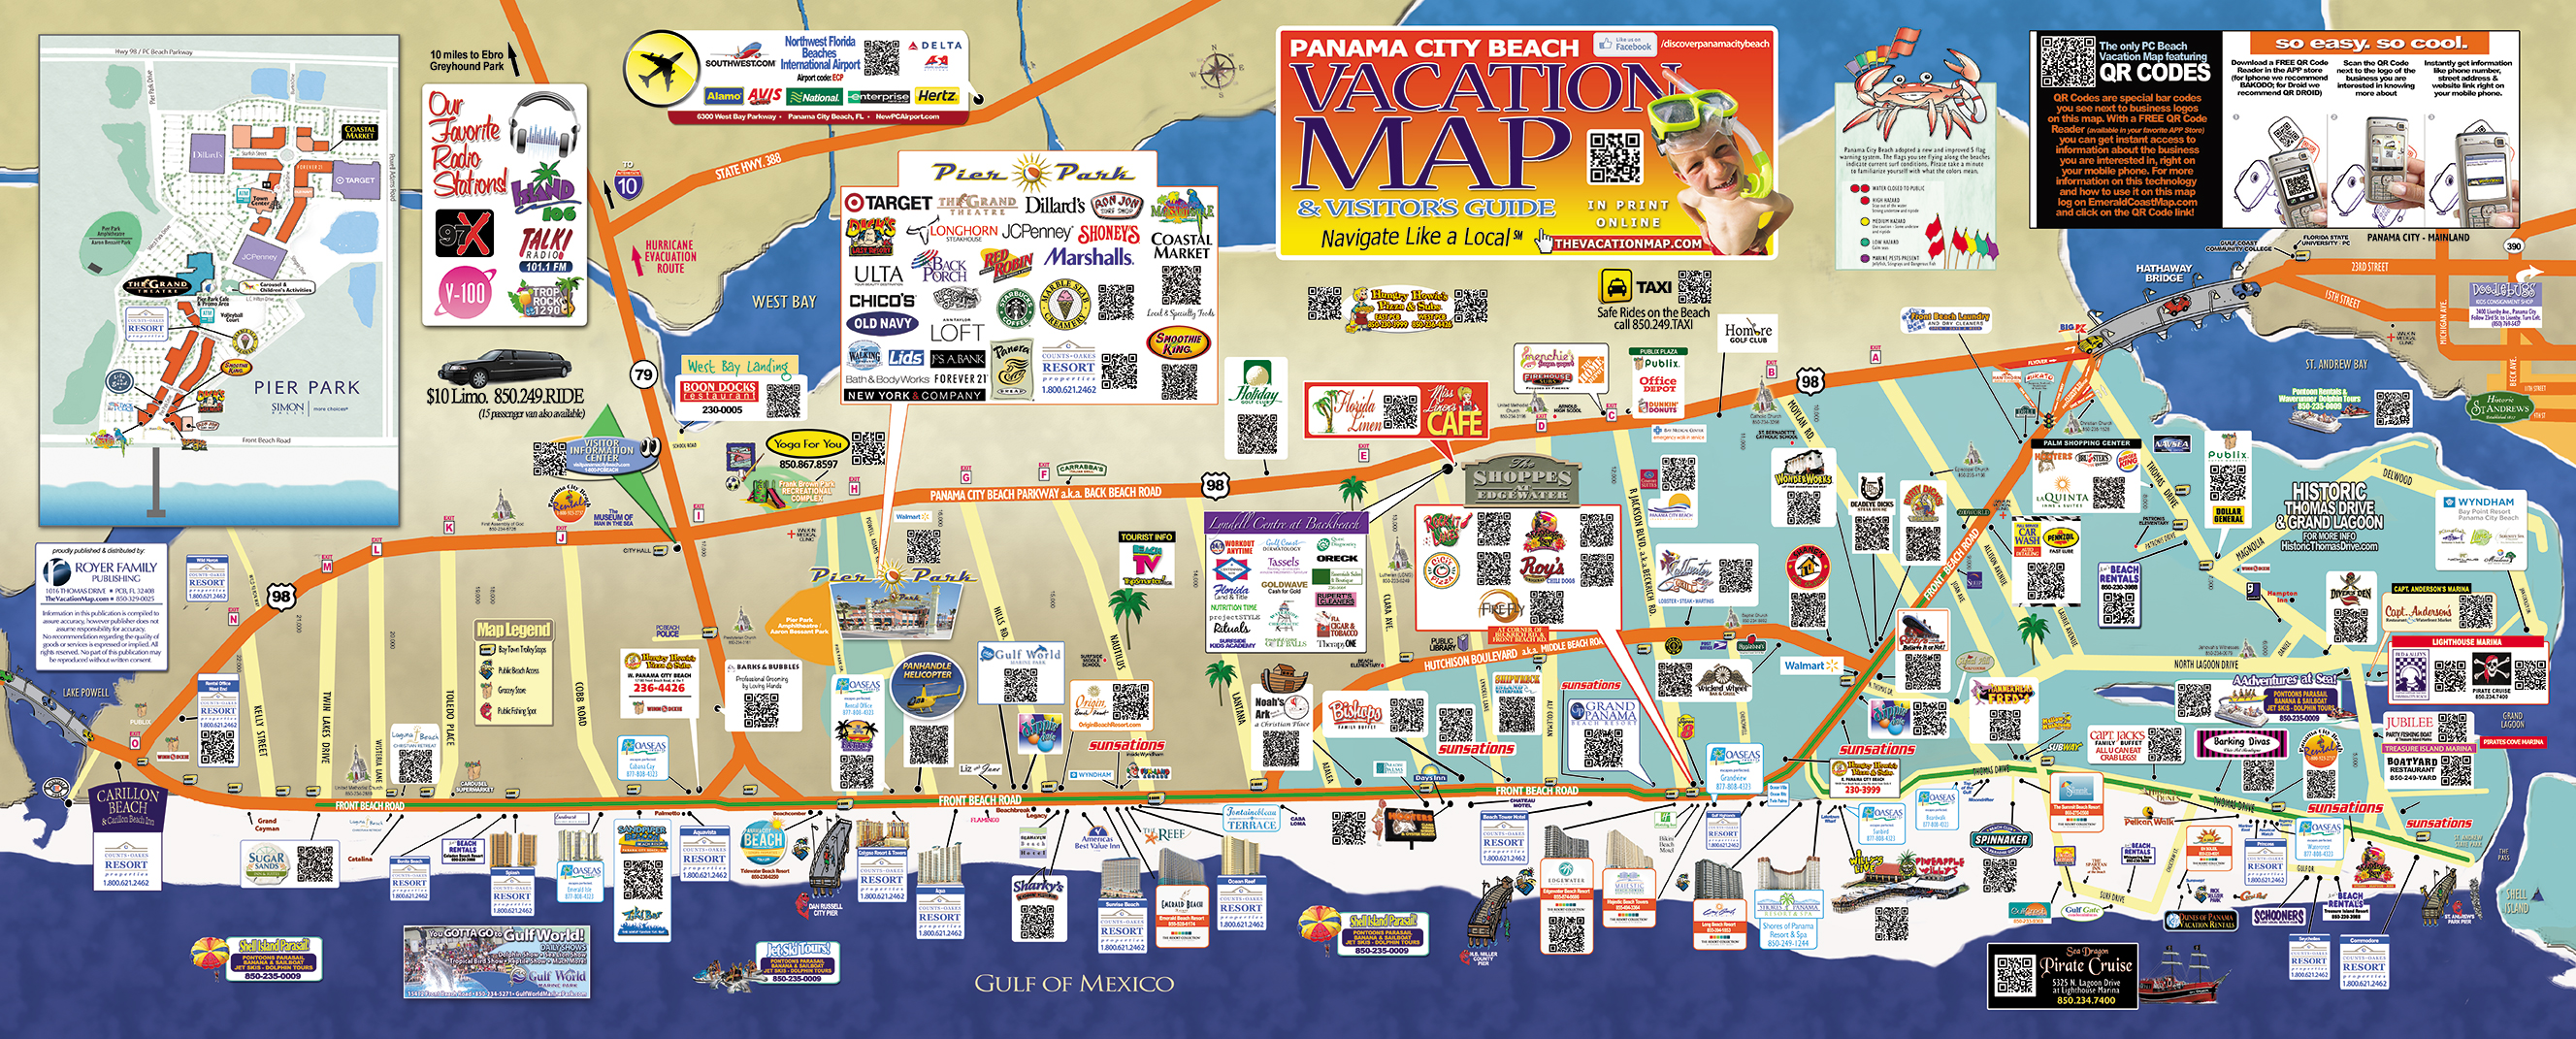 Panama City Beach Map Of Attractions Ping Restaurants Pcb Pcbcondoa921 Activities